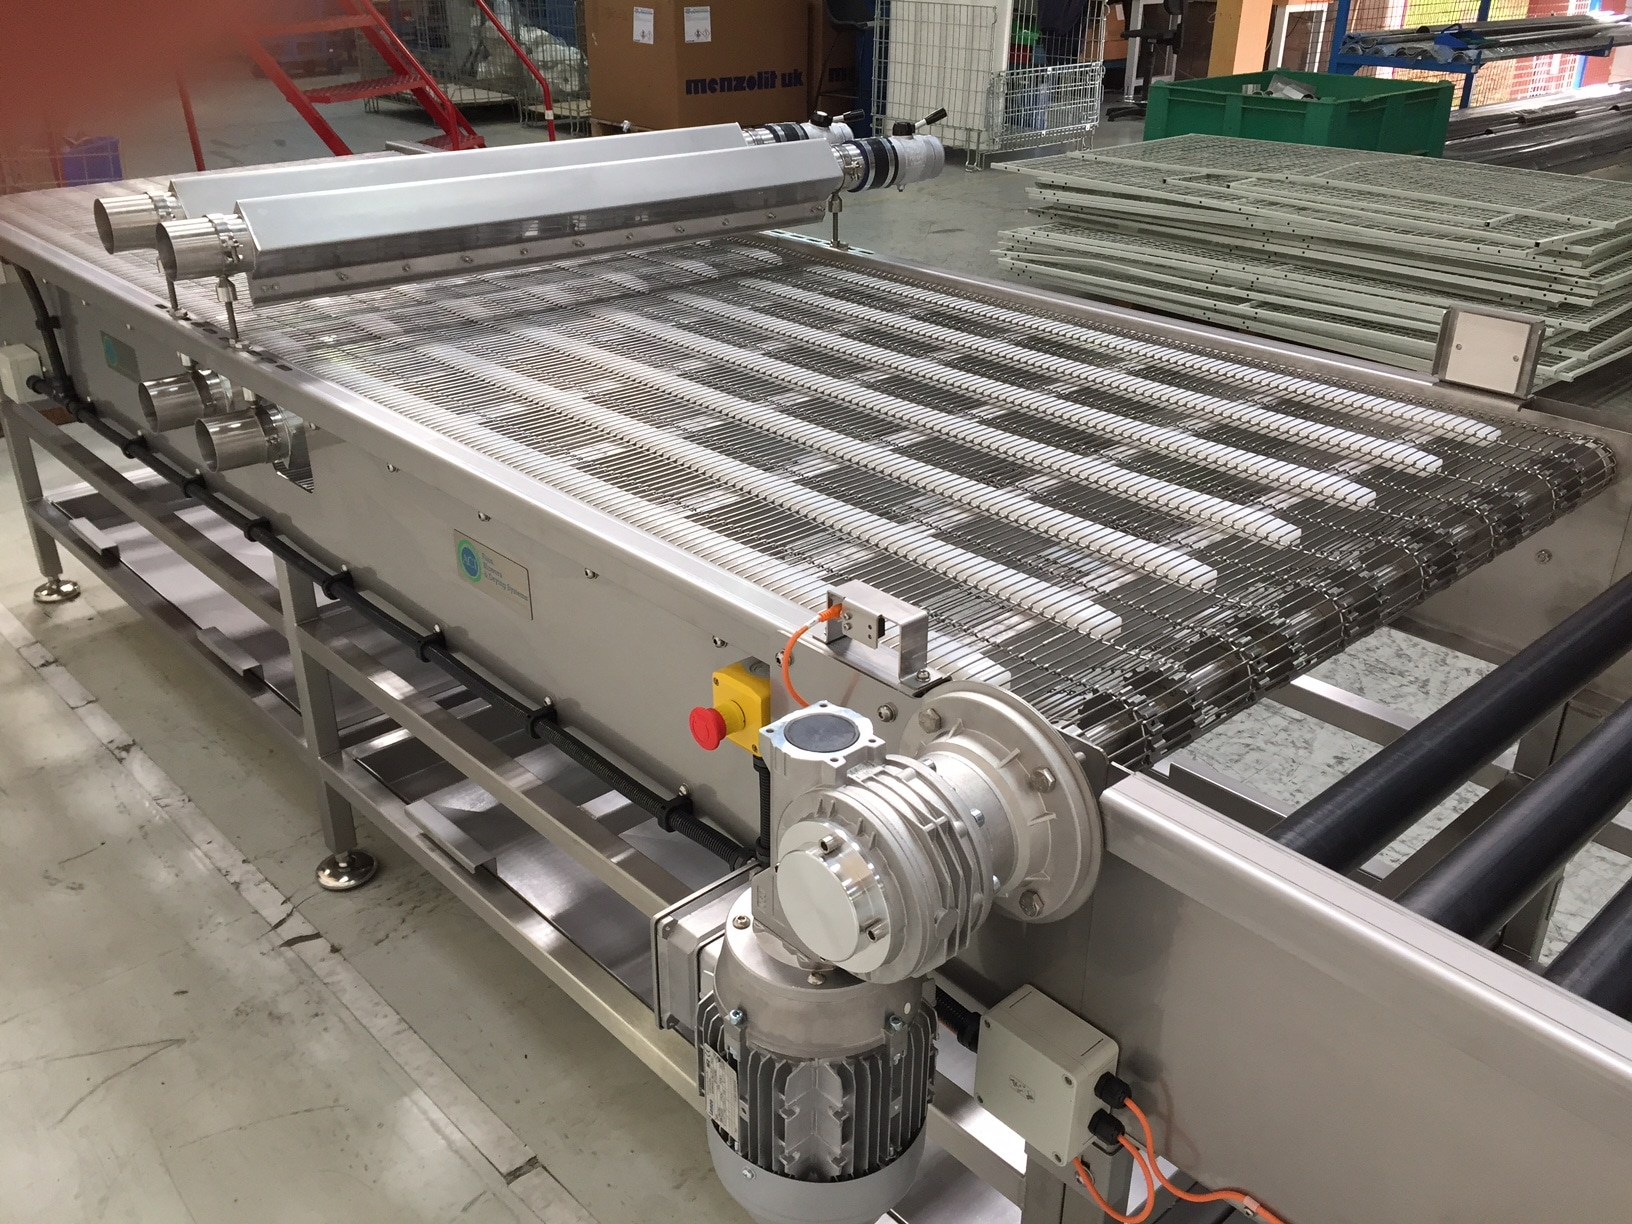 STRAIGHT FOOD CONVEYOR SYSTEM